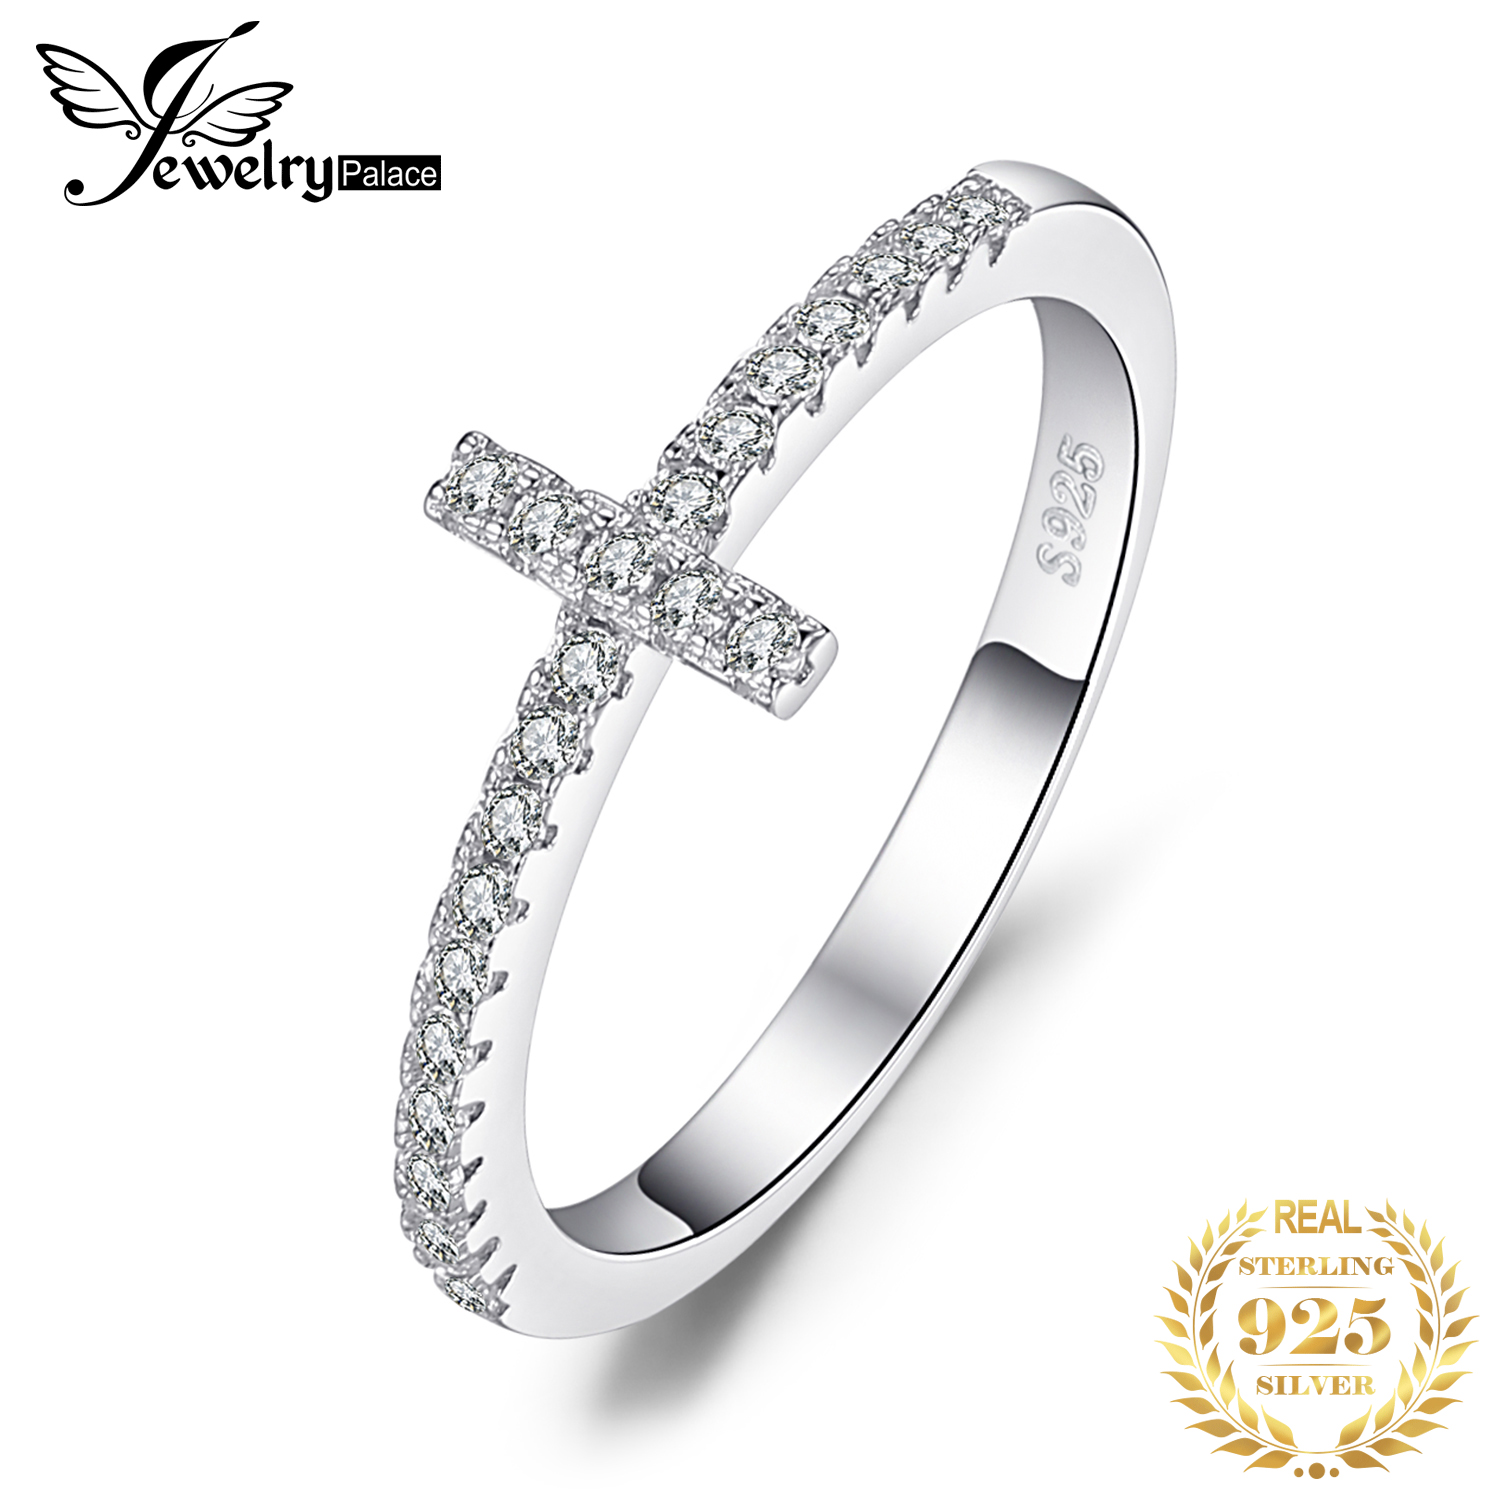 JewelryPalace Genuine AAA Zirconia Wedding Rings Fashion Cross Shape Band Pure 925 Sterling Silver Ring Jewelry Ring For Women